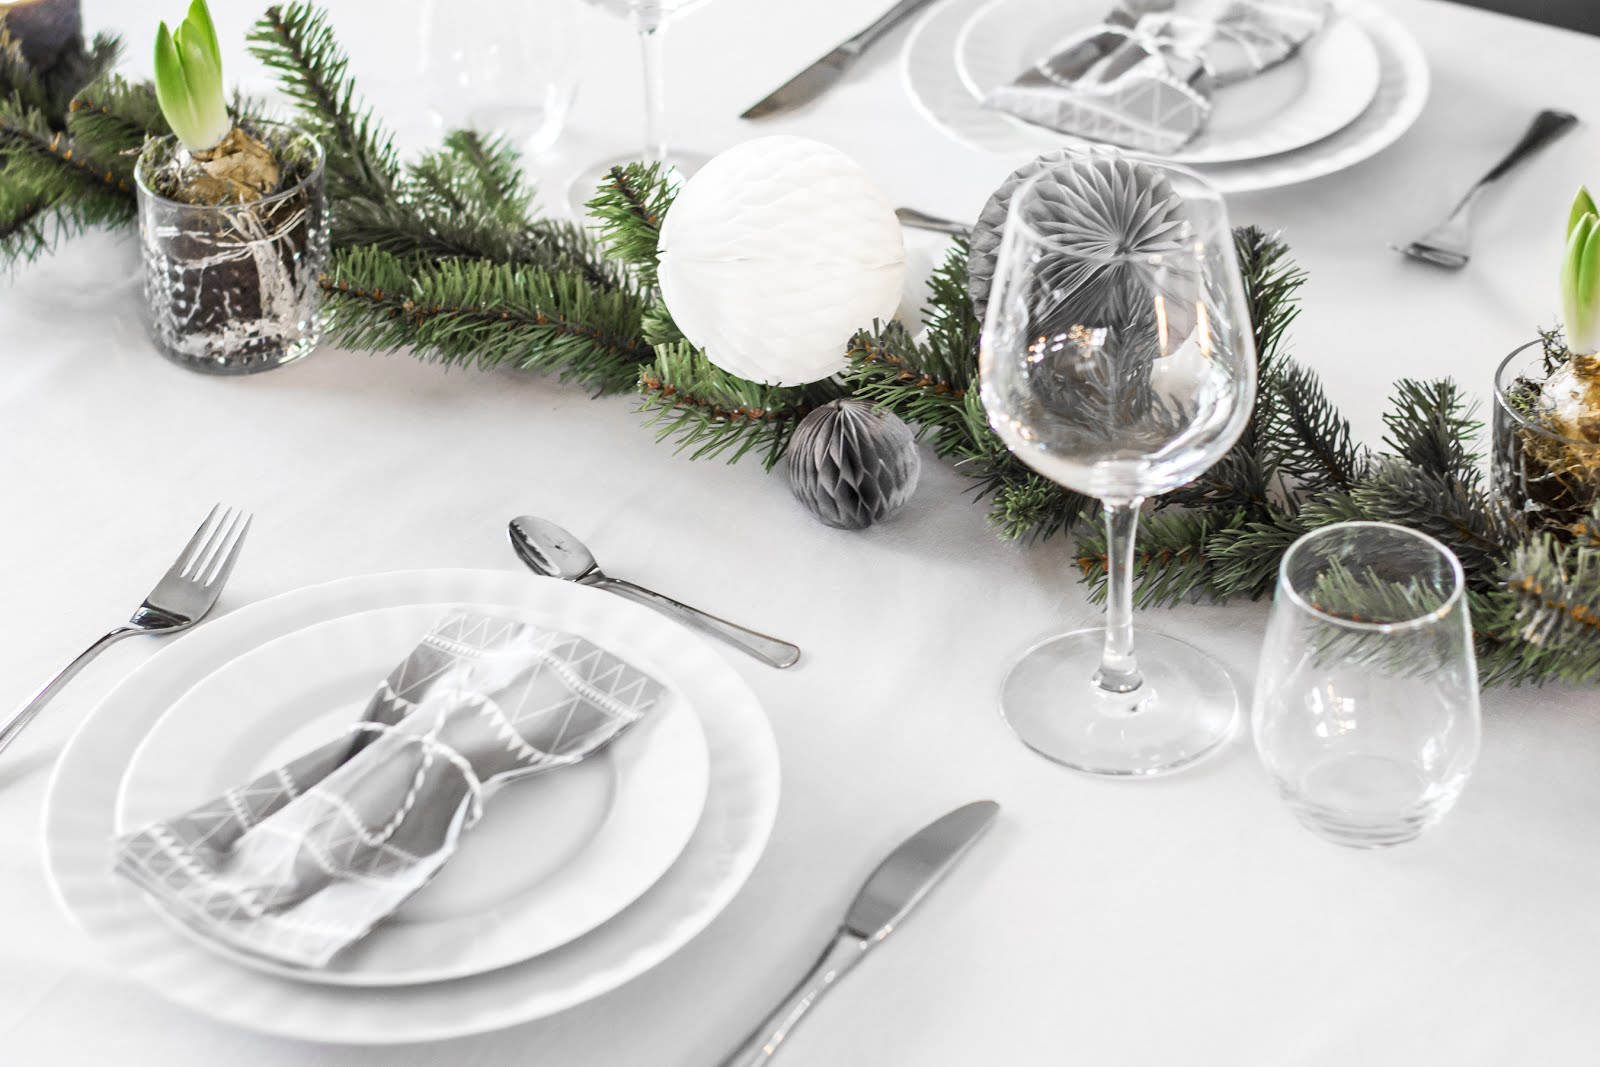 Table setting, christmas, new year's eve, decoration, ikea vinter, 2017, Tafel aankleden, dekken, interieur